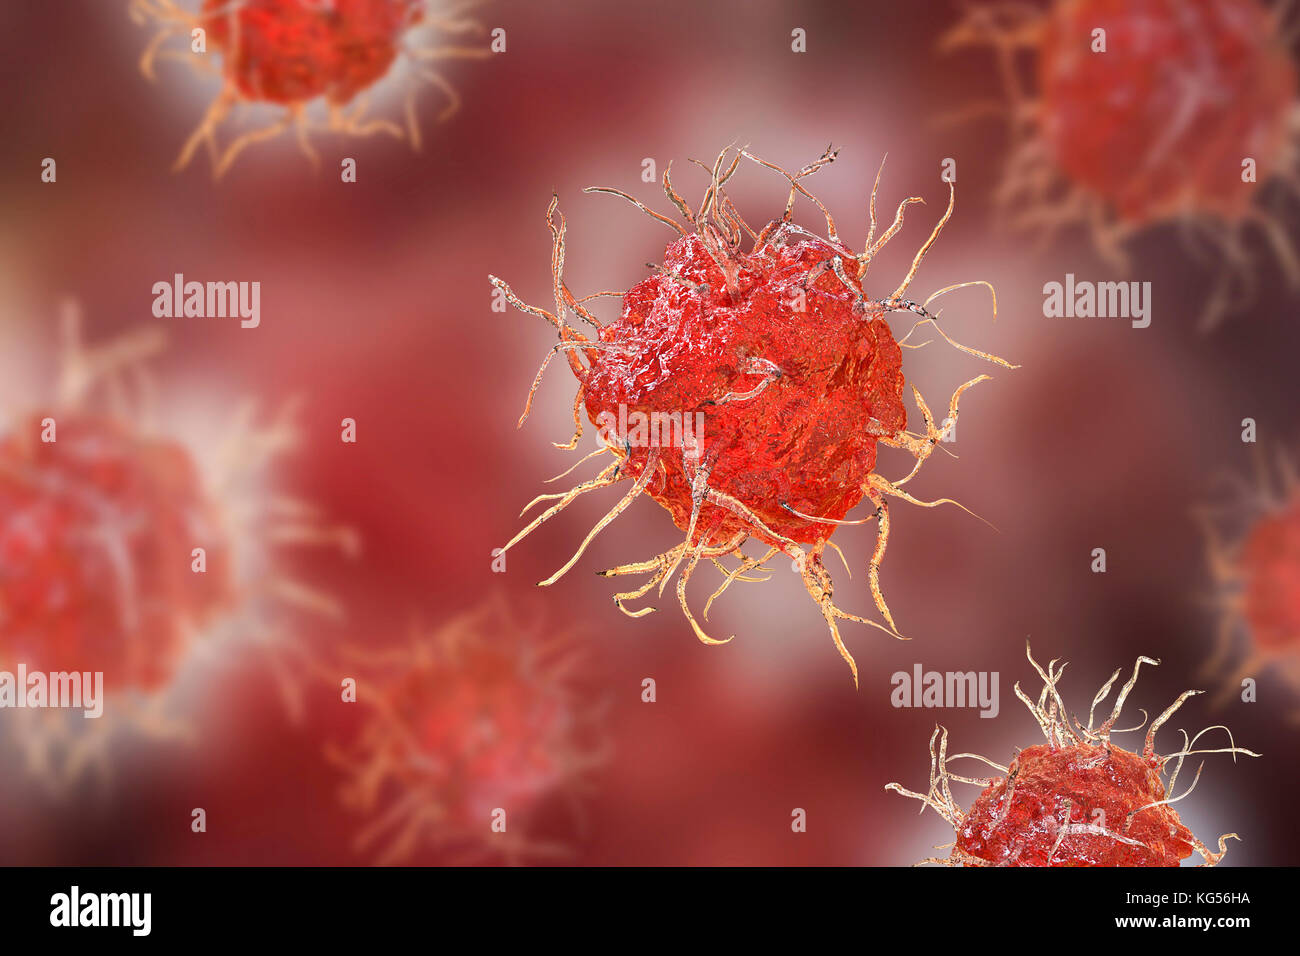 Dendritic cells, computer illustration. Dendritic cells, a type of white blood cell, are a type of antigen presenting - Stock Image